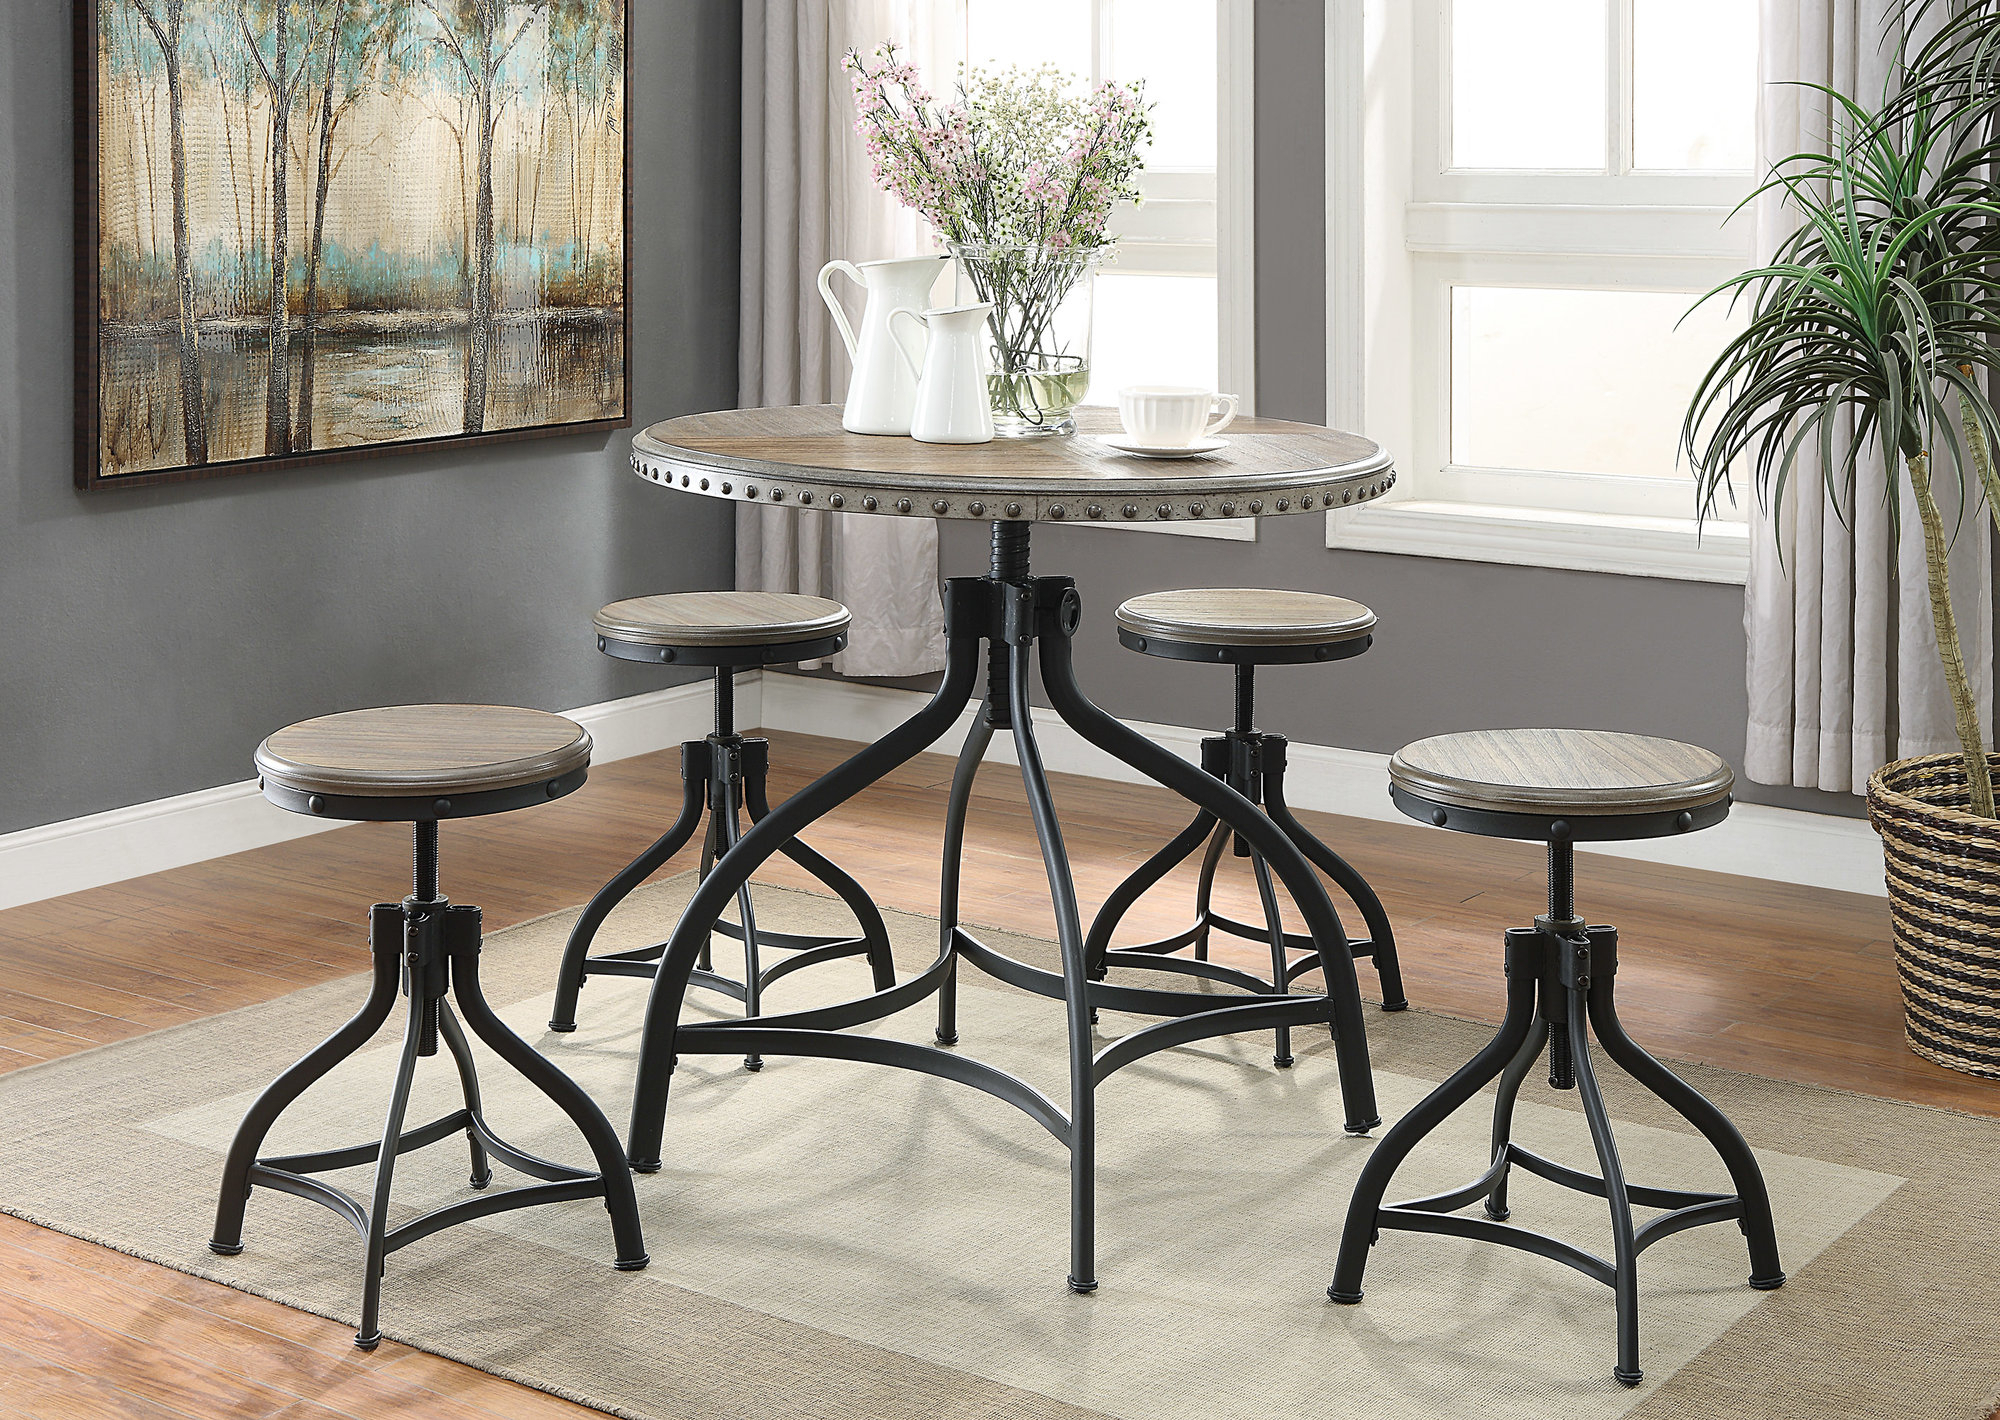 Details About Williston Forge Millner 5 Piece Dining Set With Regard To Most Current Mulvey 5 Piece Dining Sets (View 17 of 20)